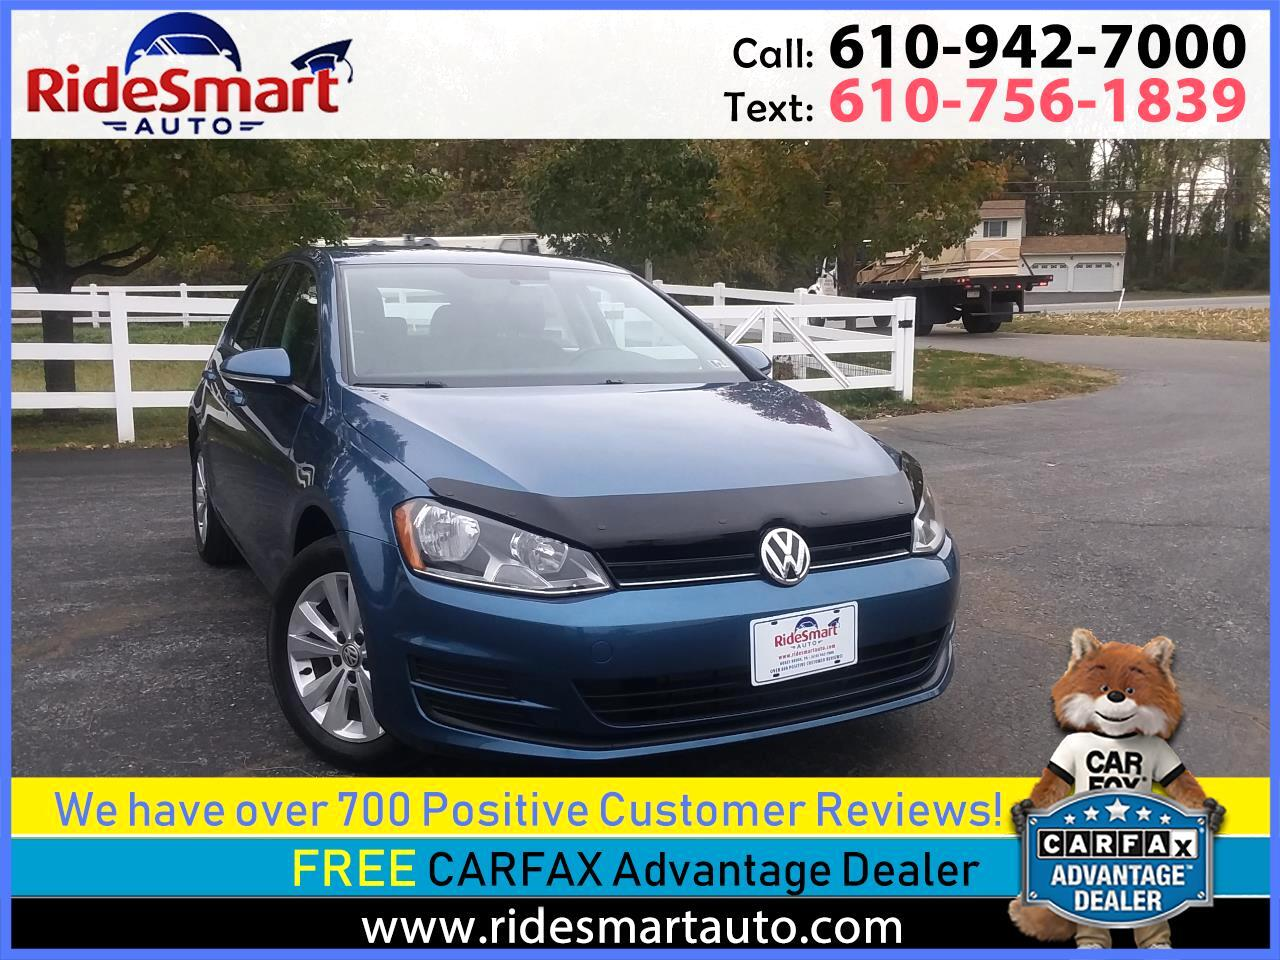 2015 Volkswagen Golf TDI S Hatchback 6 Speed Manual Trans